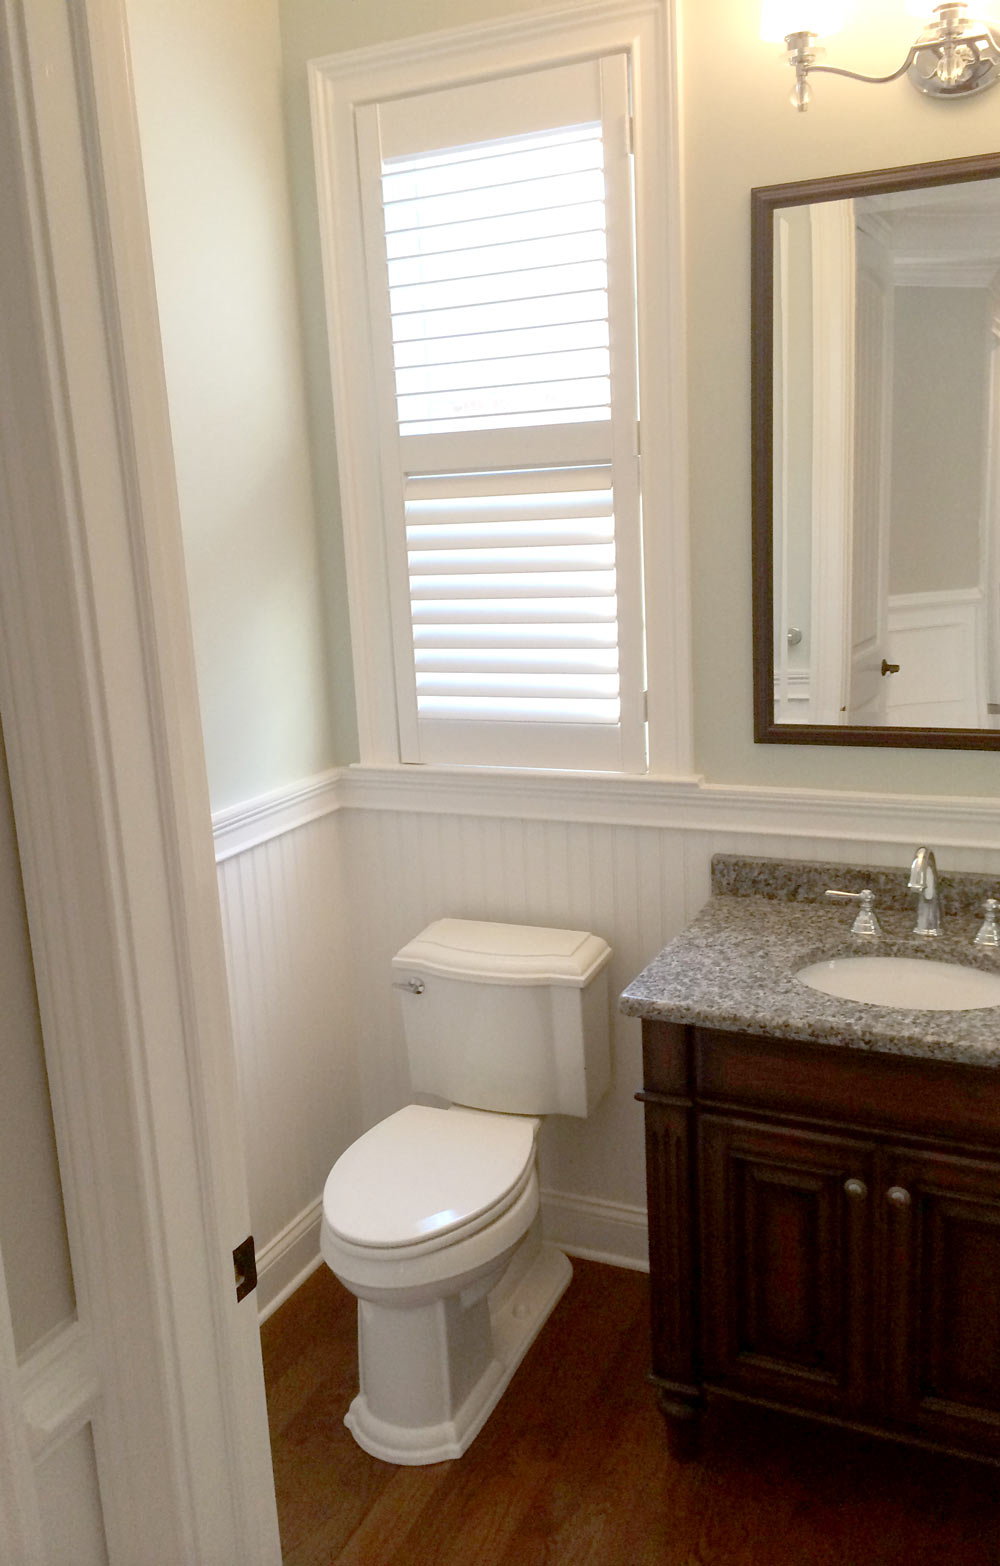 Bathroom remodeling contractor in medford nj aj wehner for 2 bathroom